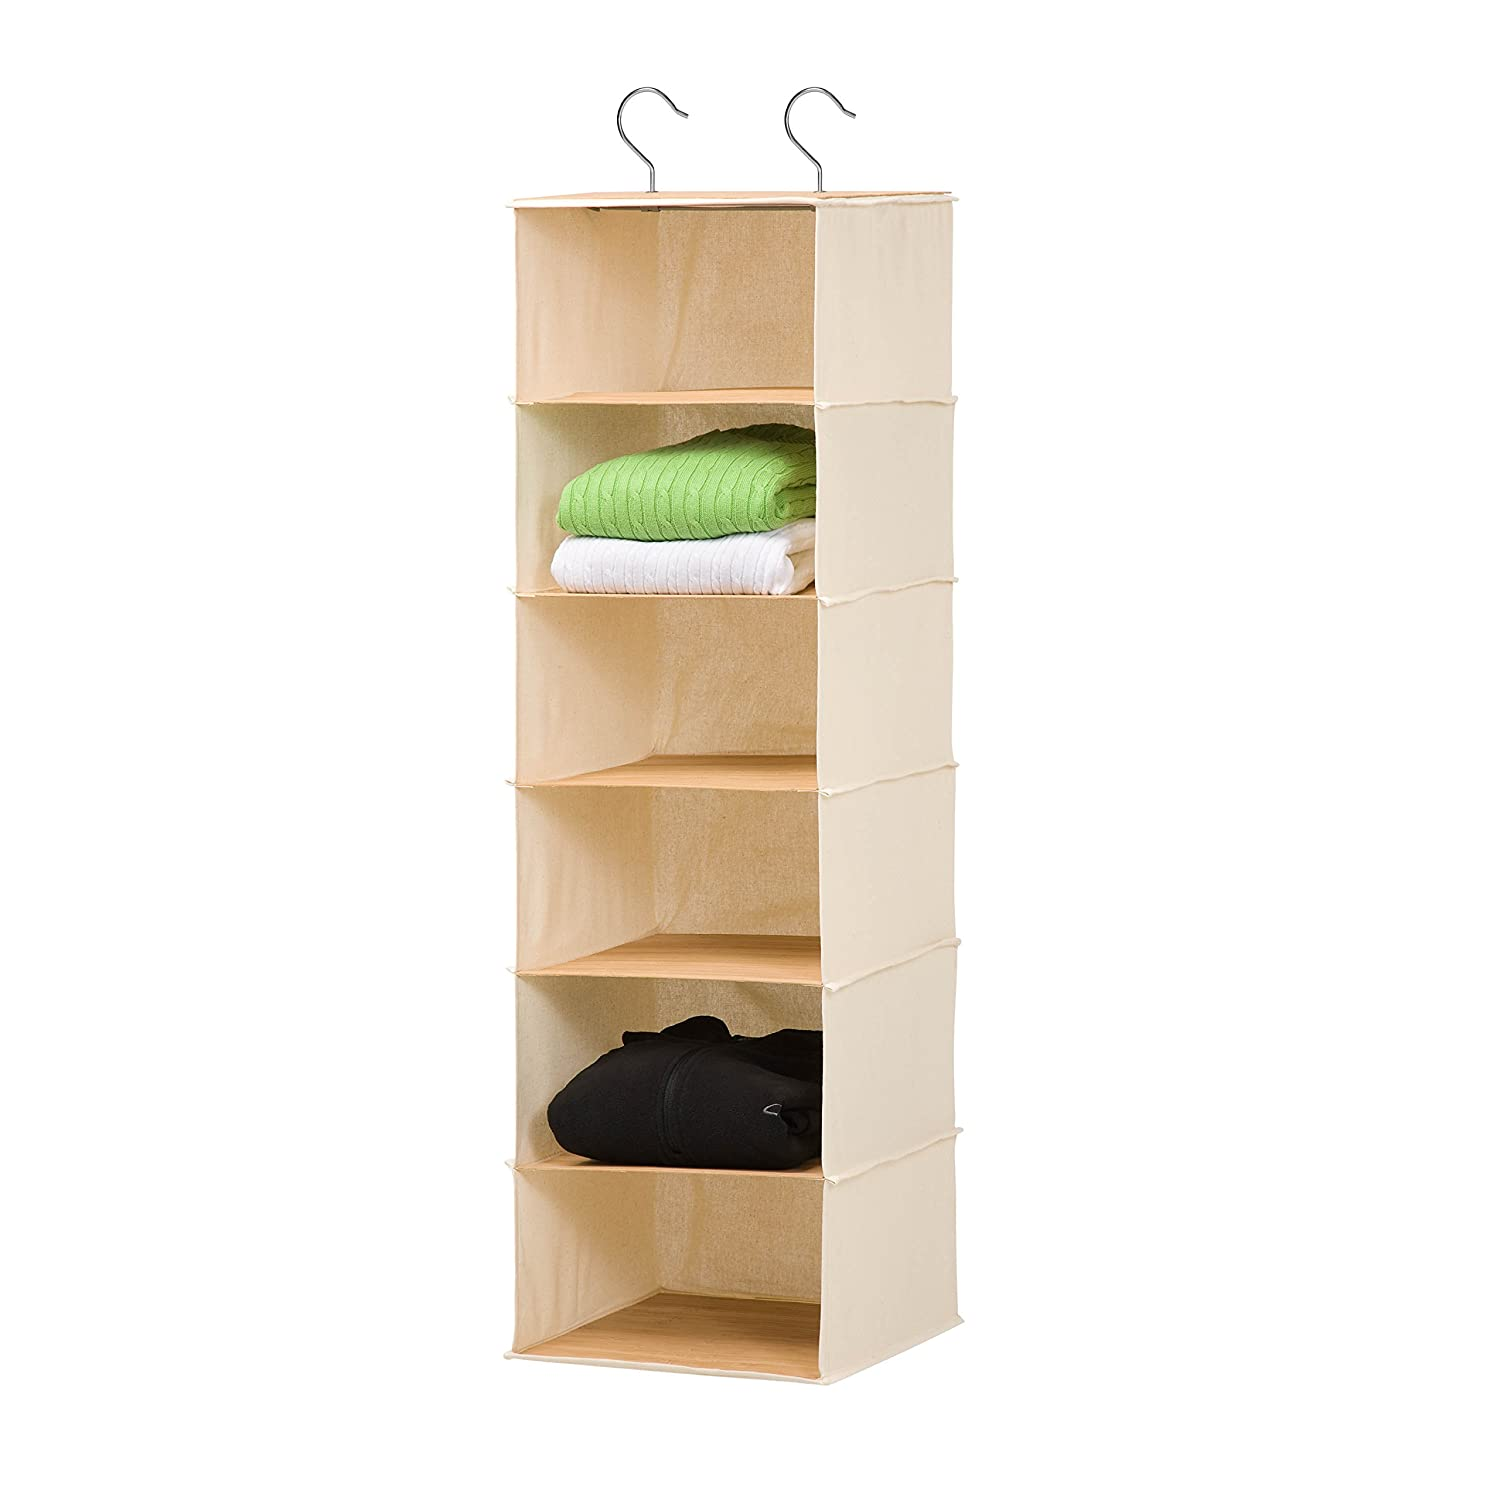 Charmant Amazon.com: Honey Can Do SFT 01003 Hanging Closet Organizer, Bamboo/Canvas,  6 Shelf: Home U0026 Kitchen